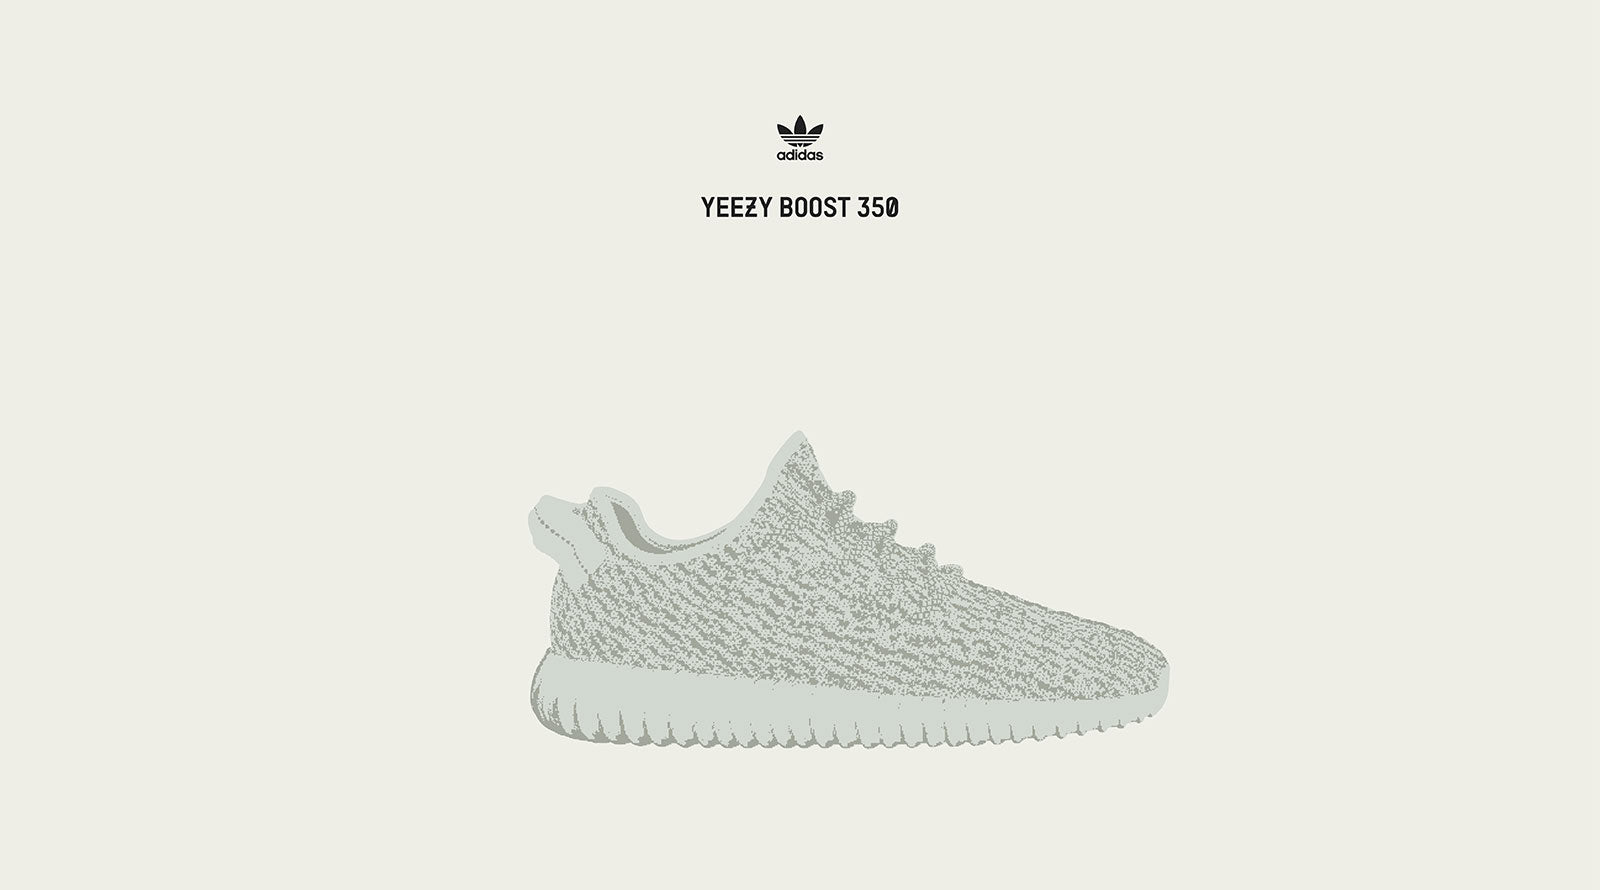 Yeezy Boost 350 Release Instructions